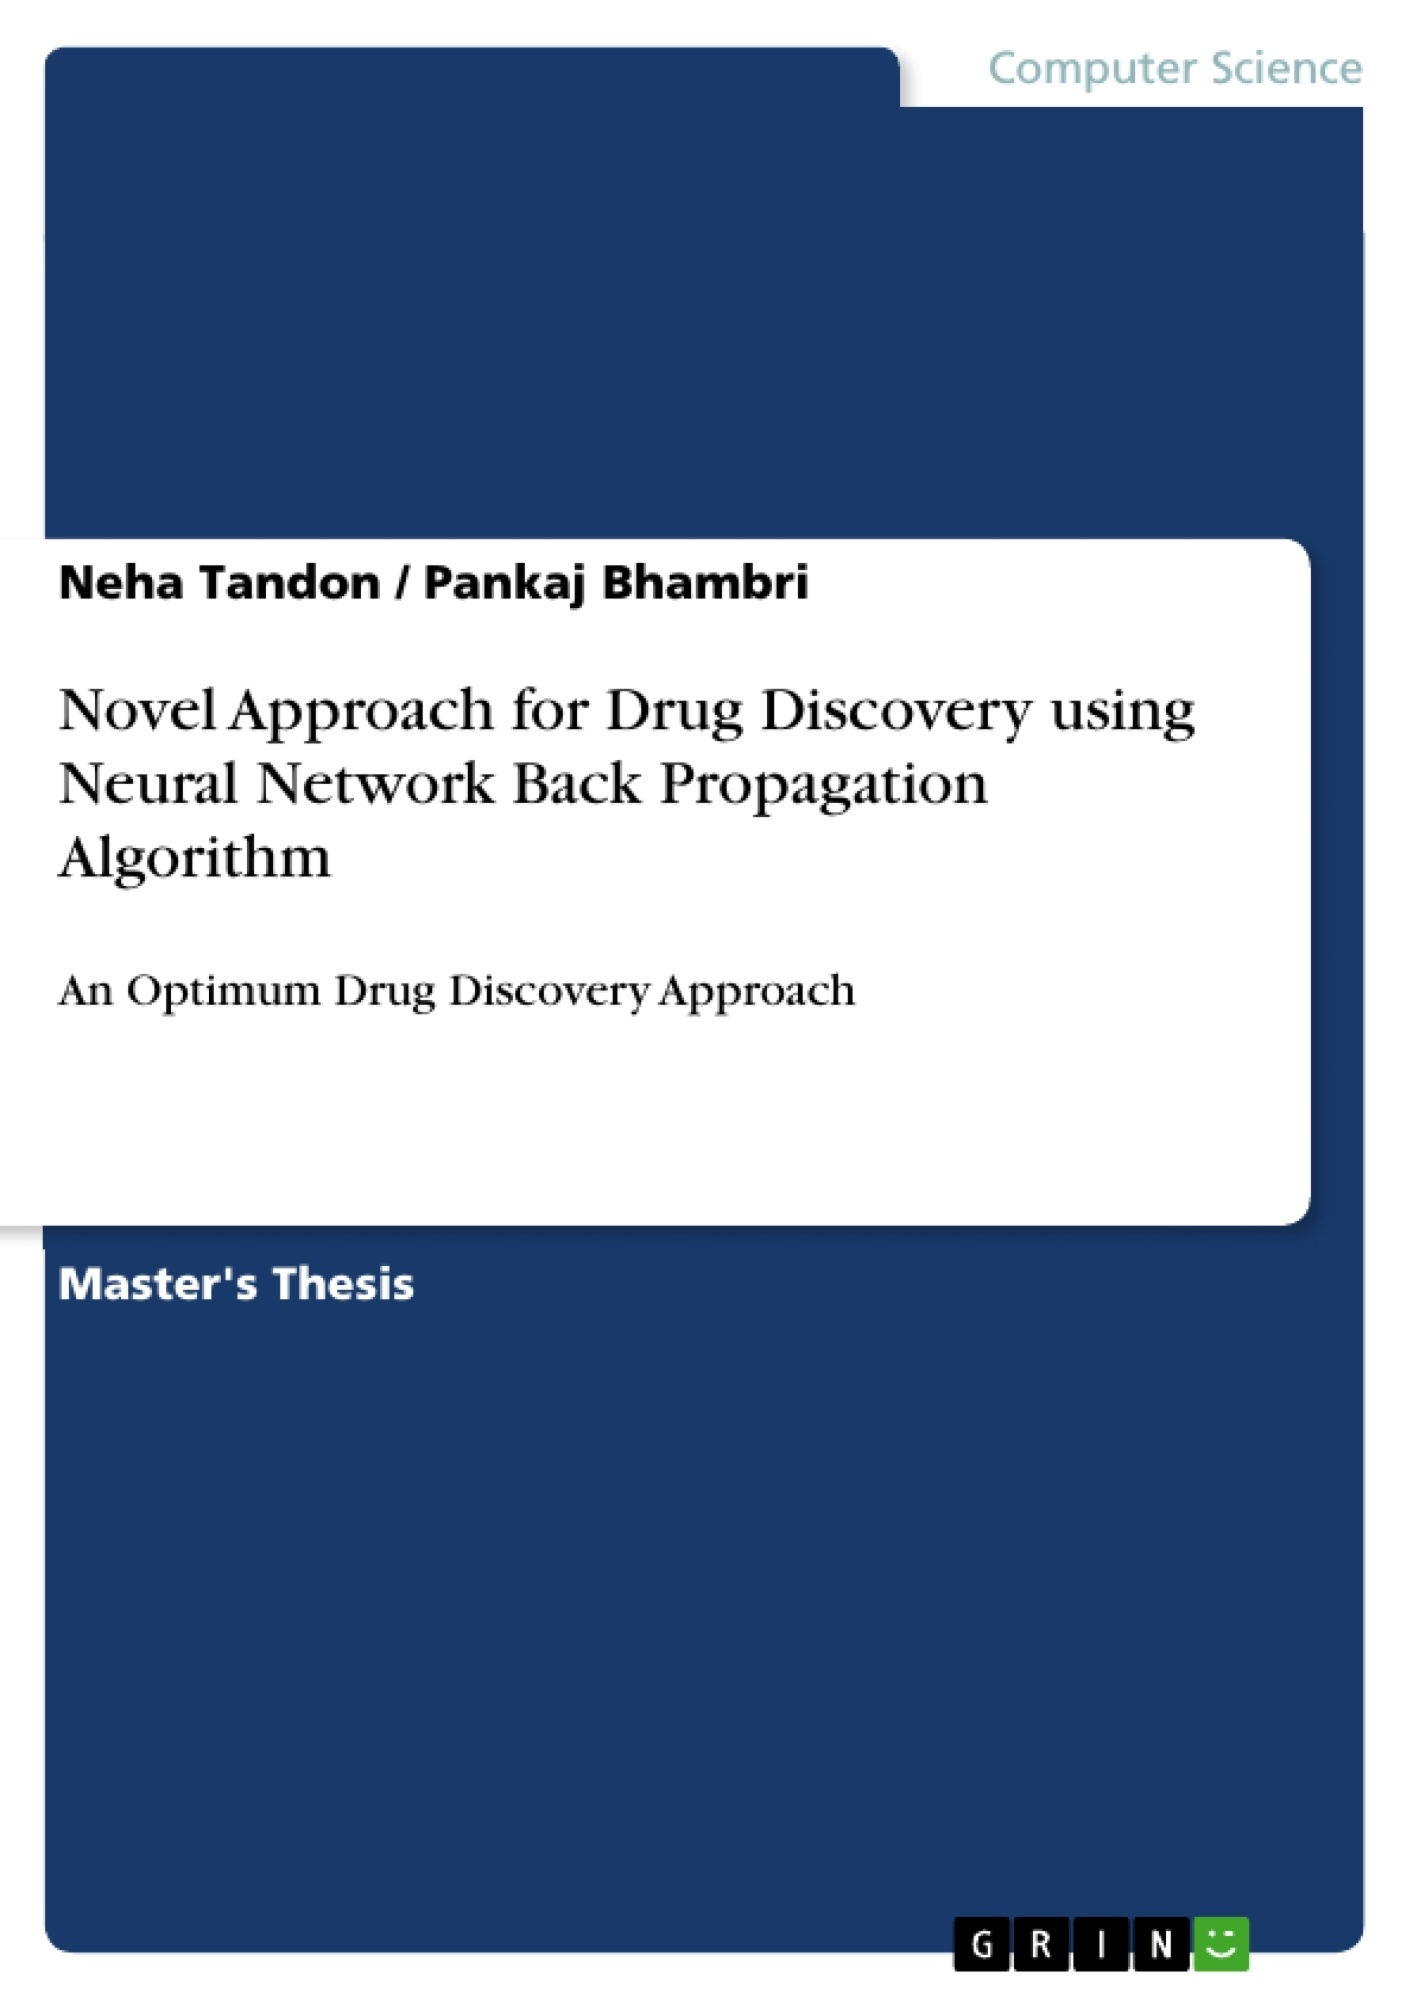 Title: Novel Approach for Drug Discovery using Neural Network Back Propagation Algorithm